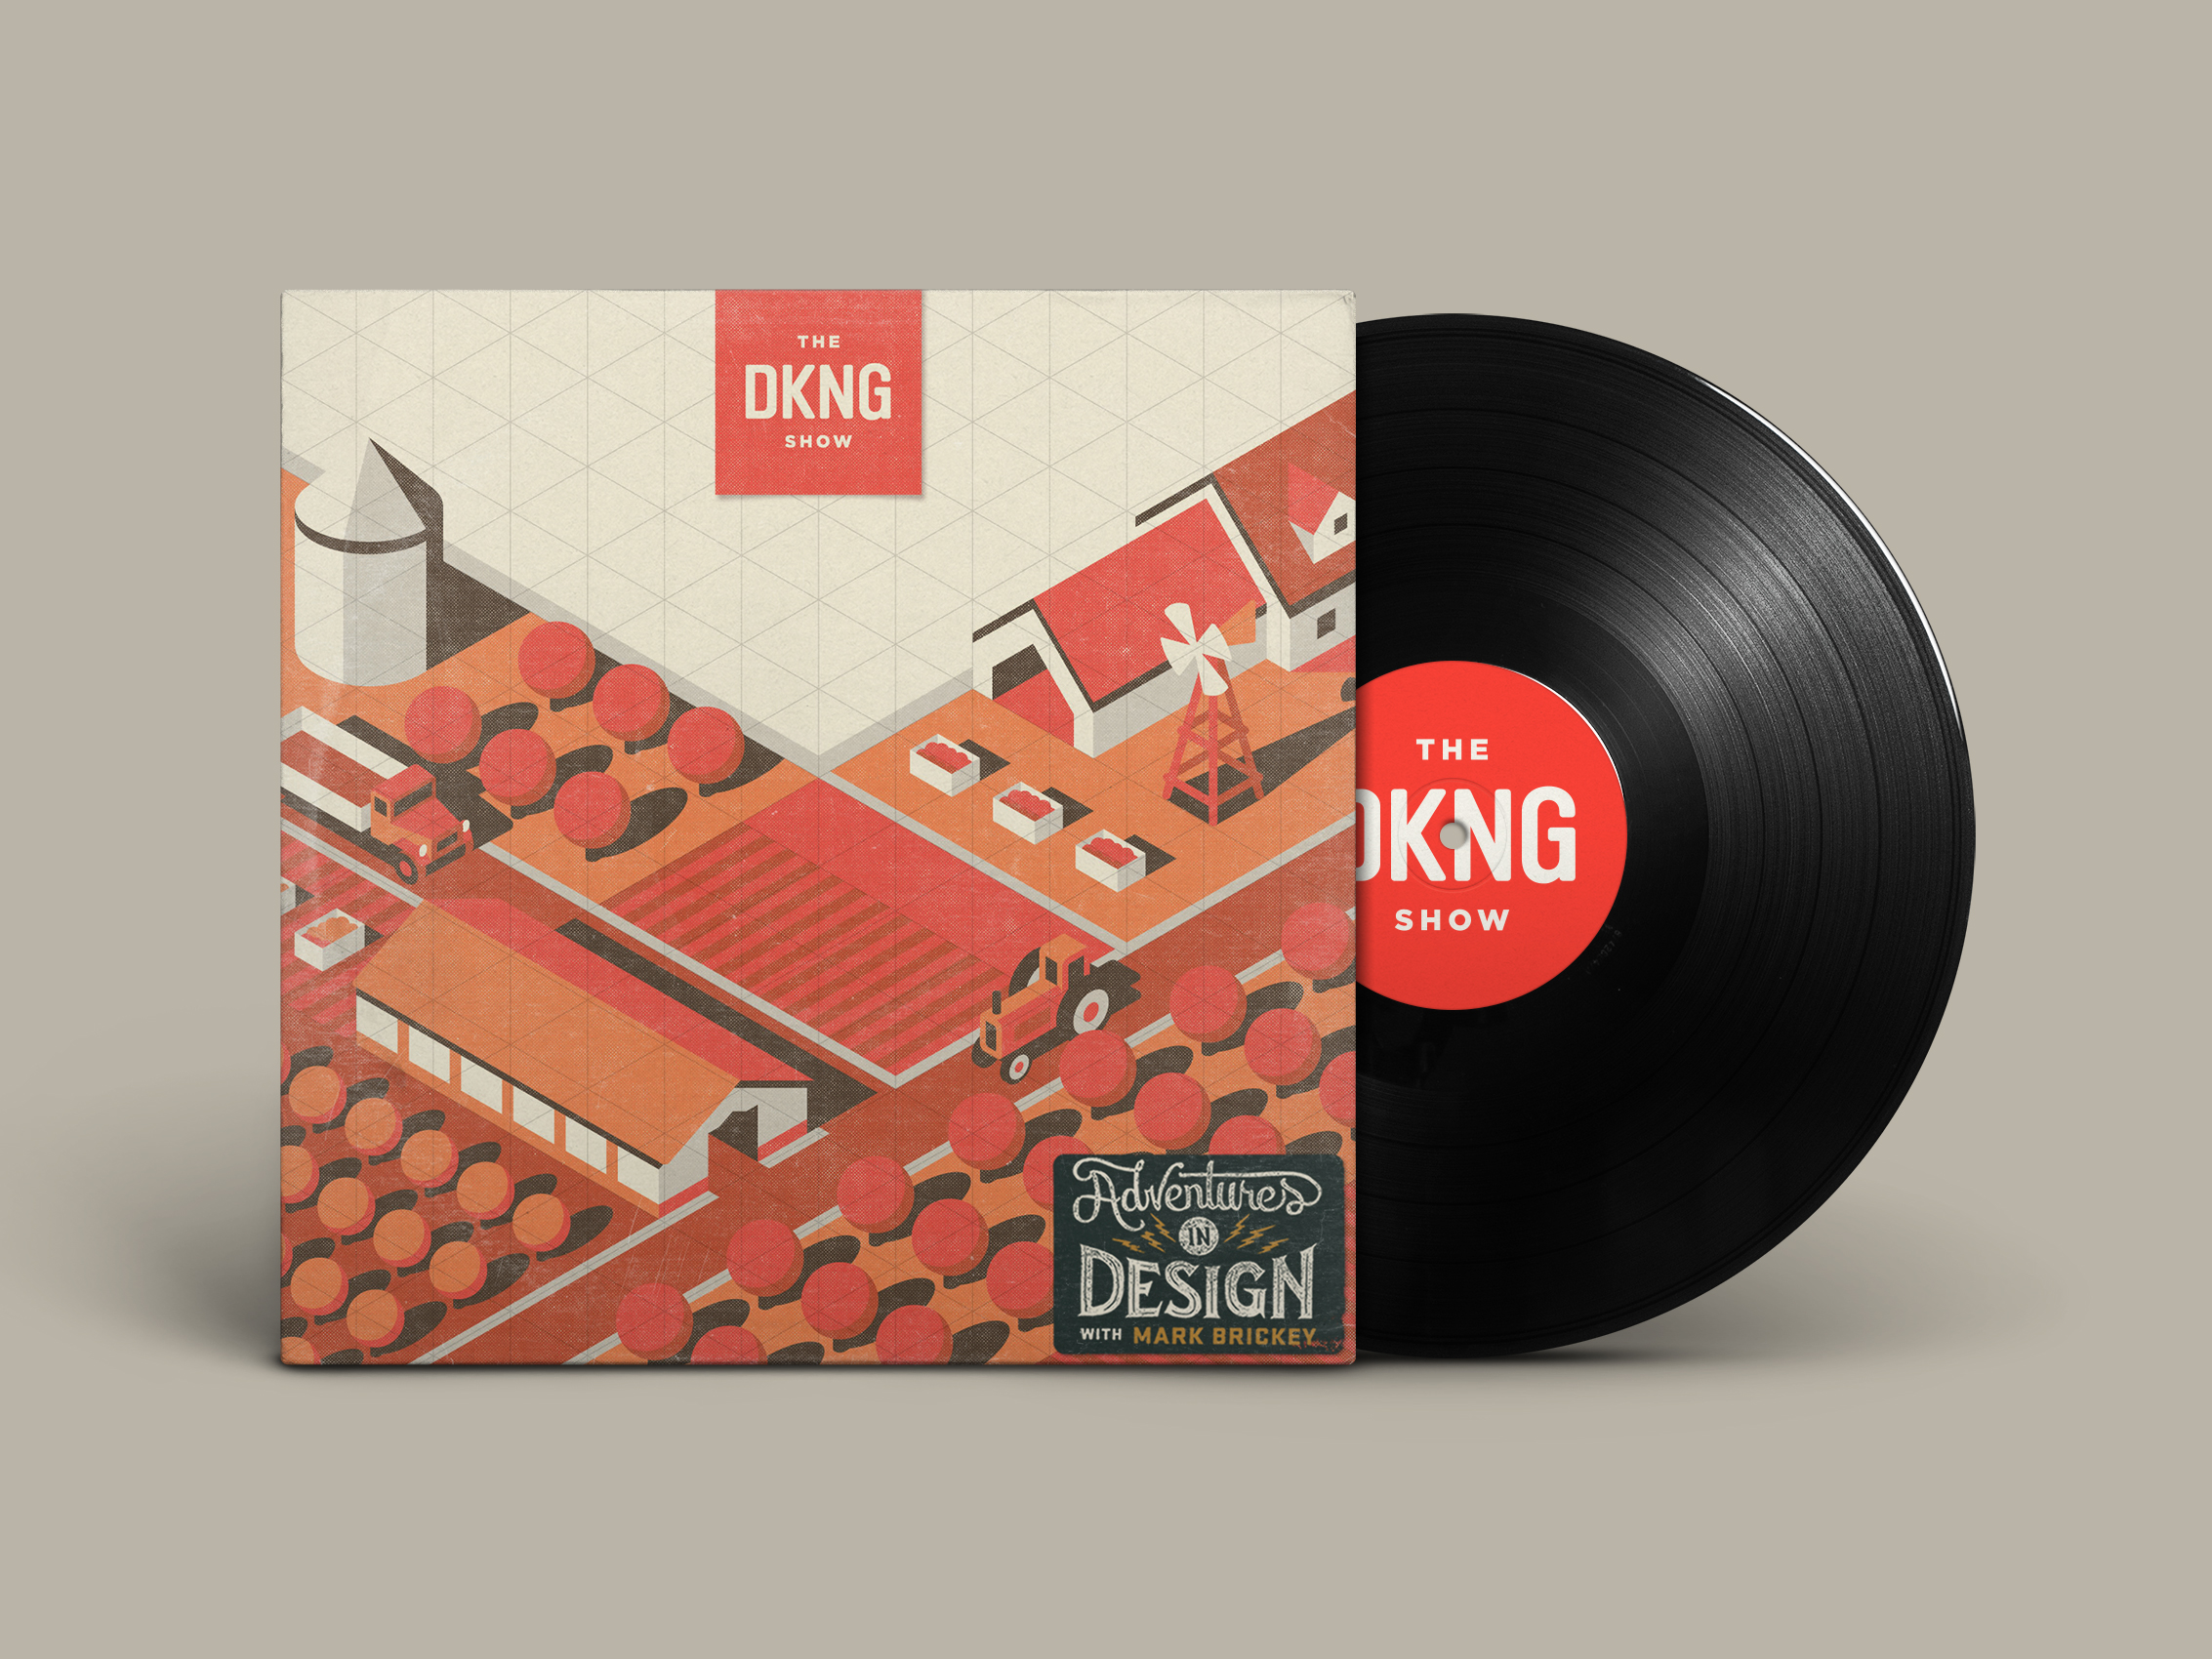 The DKNG Show (Episode 3)